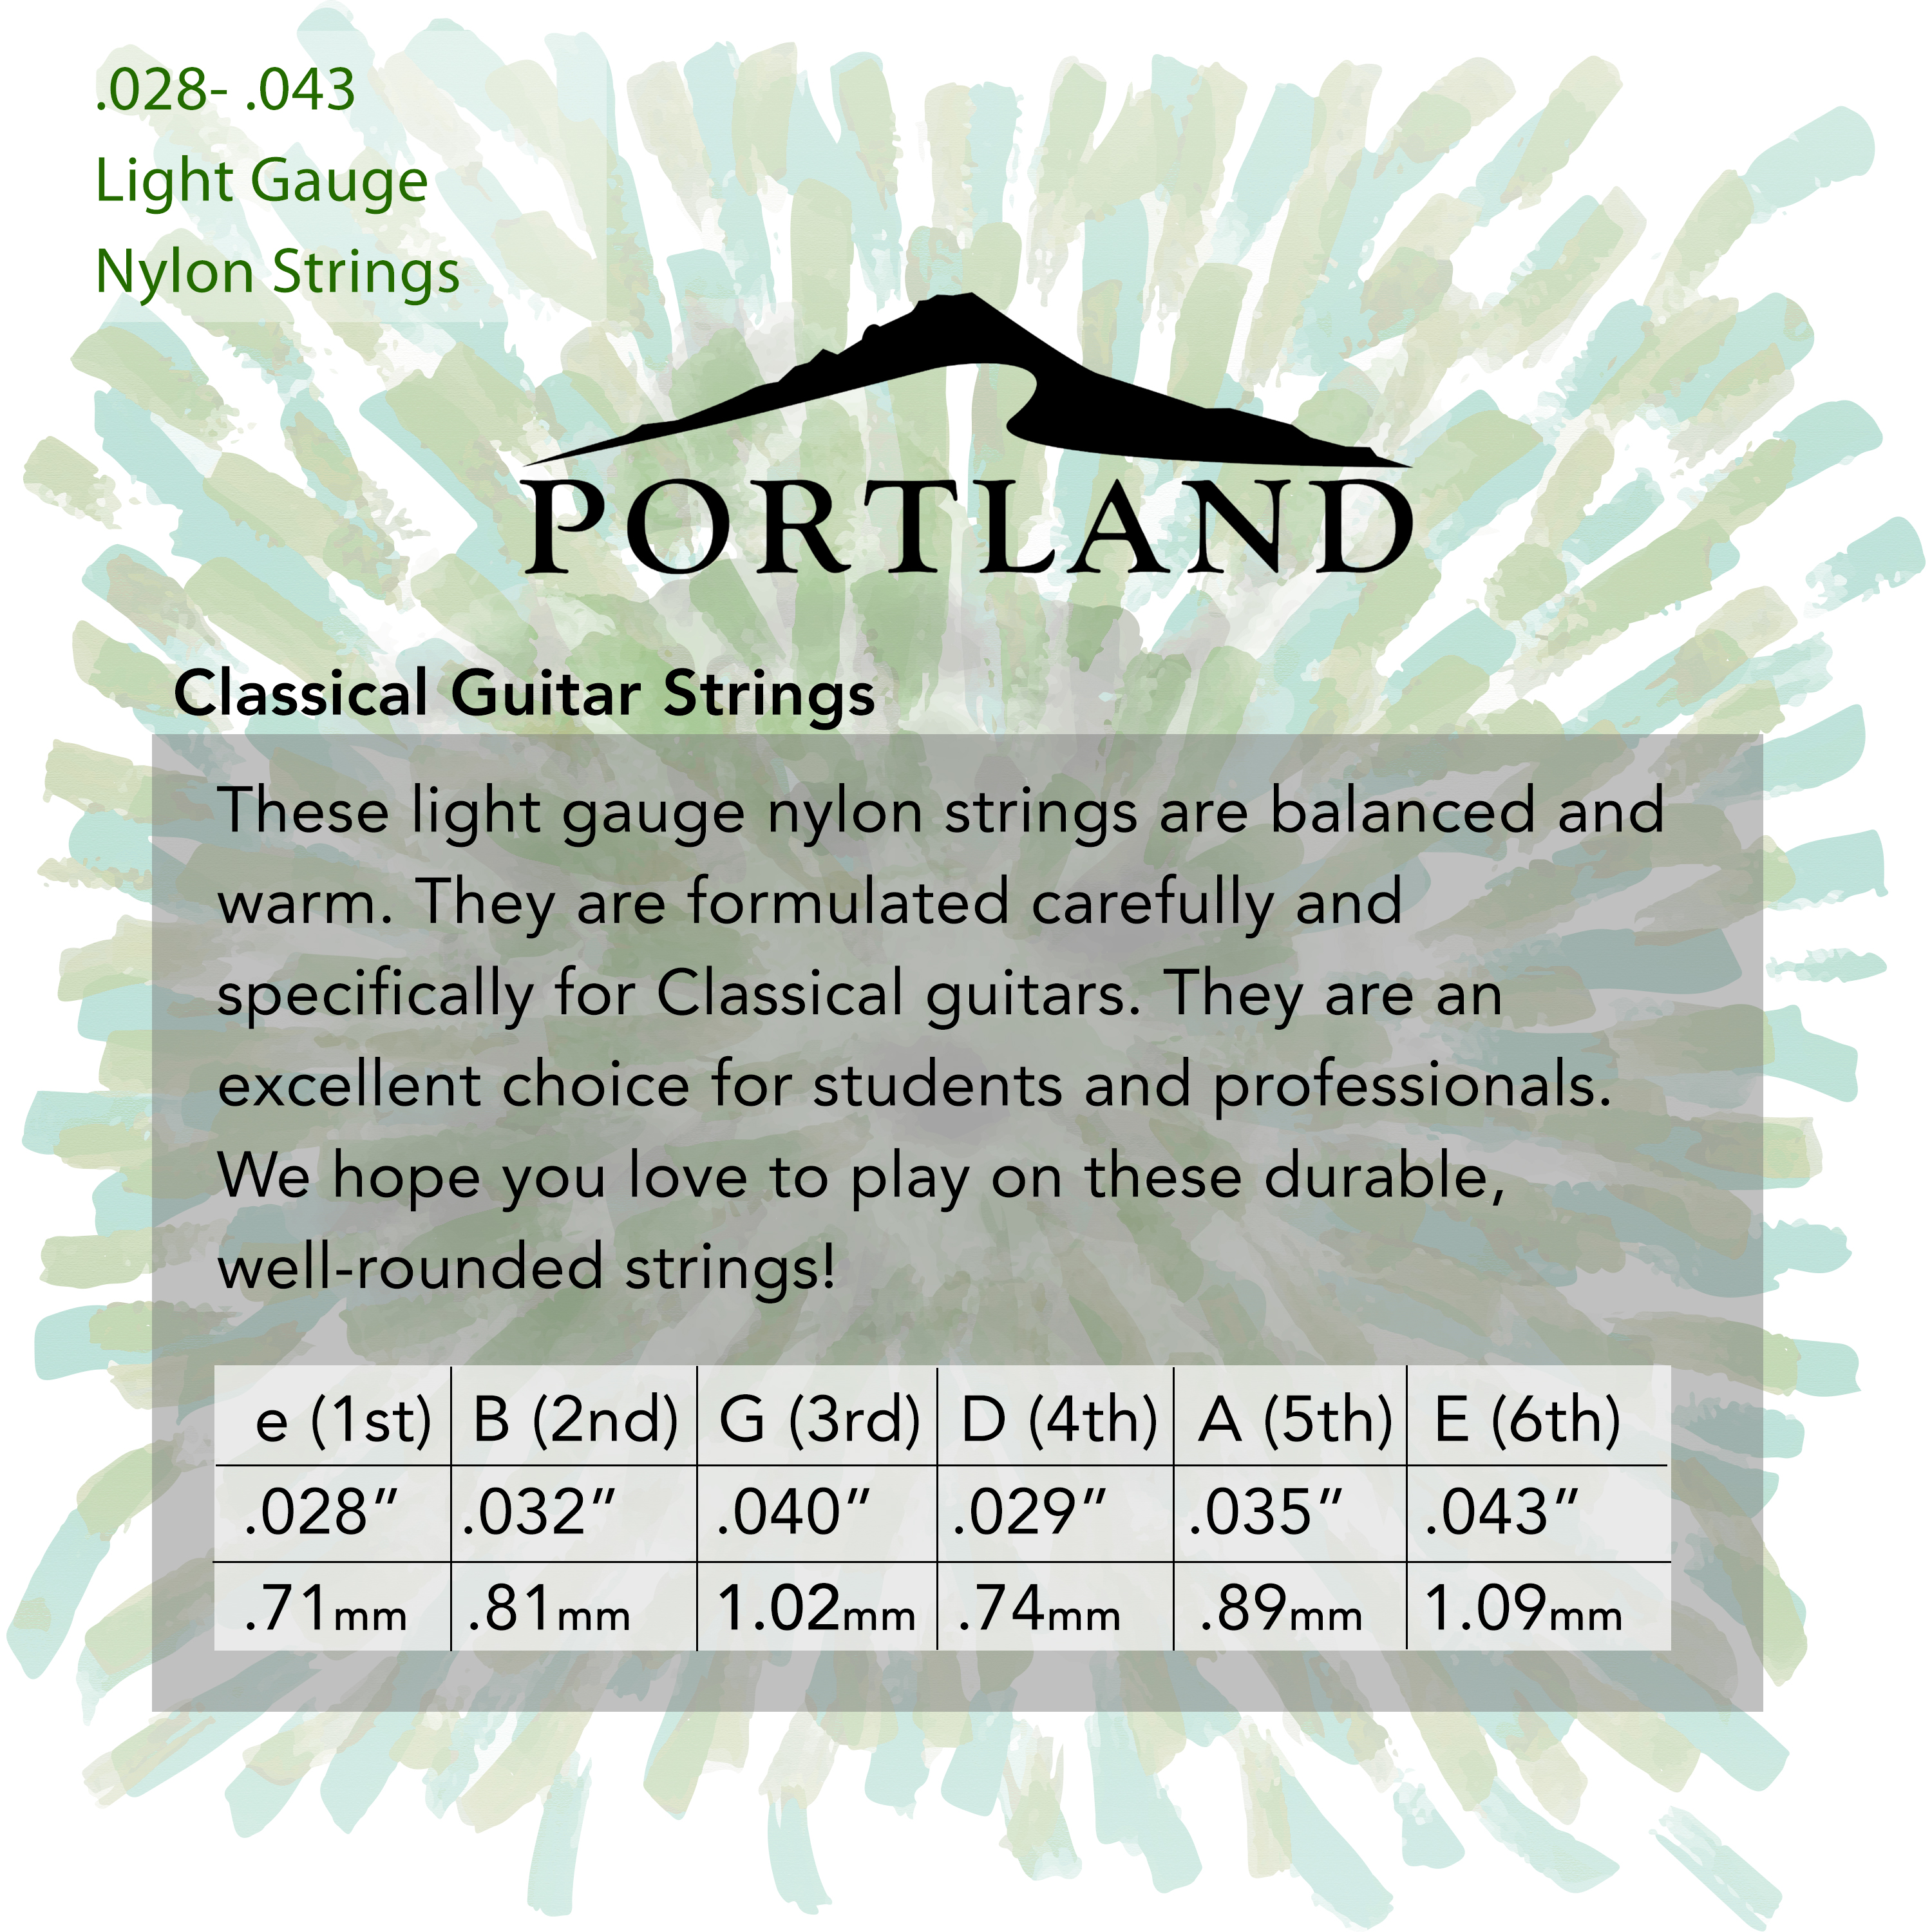 Portland Nylon Classical Guitar Strings in action